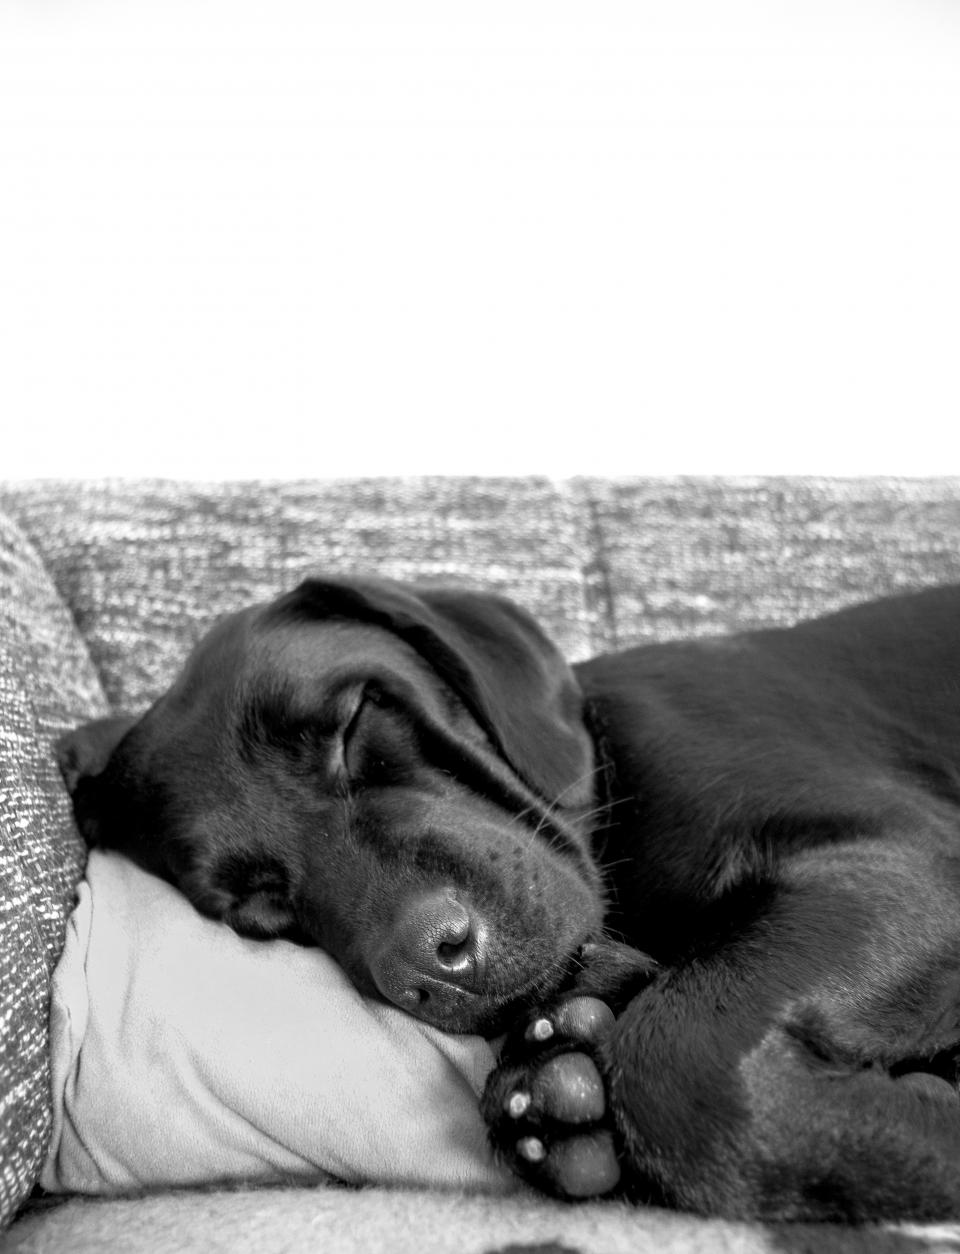 dog, puppy, pet, animal, sleeping, pillow, couch